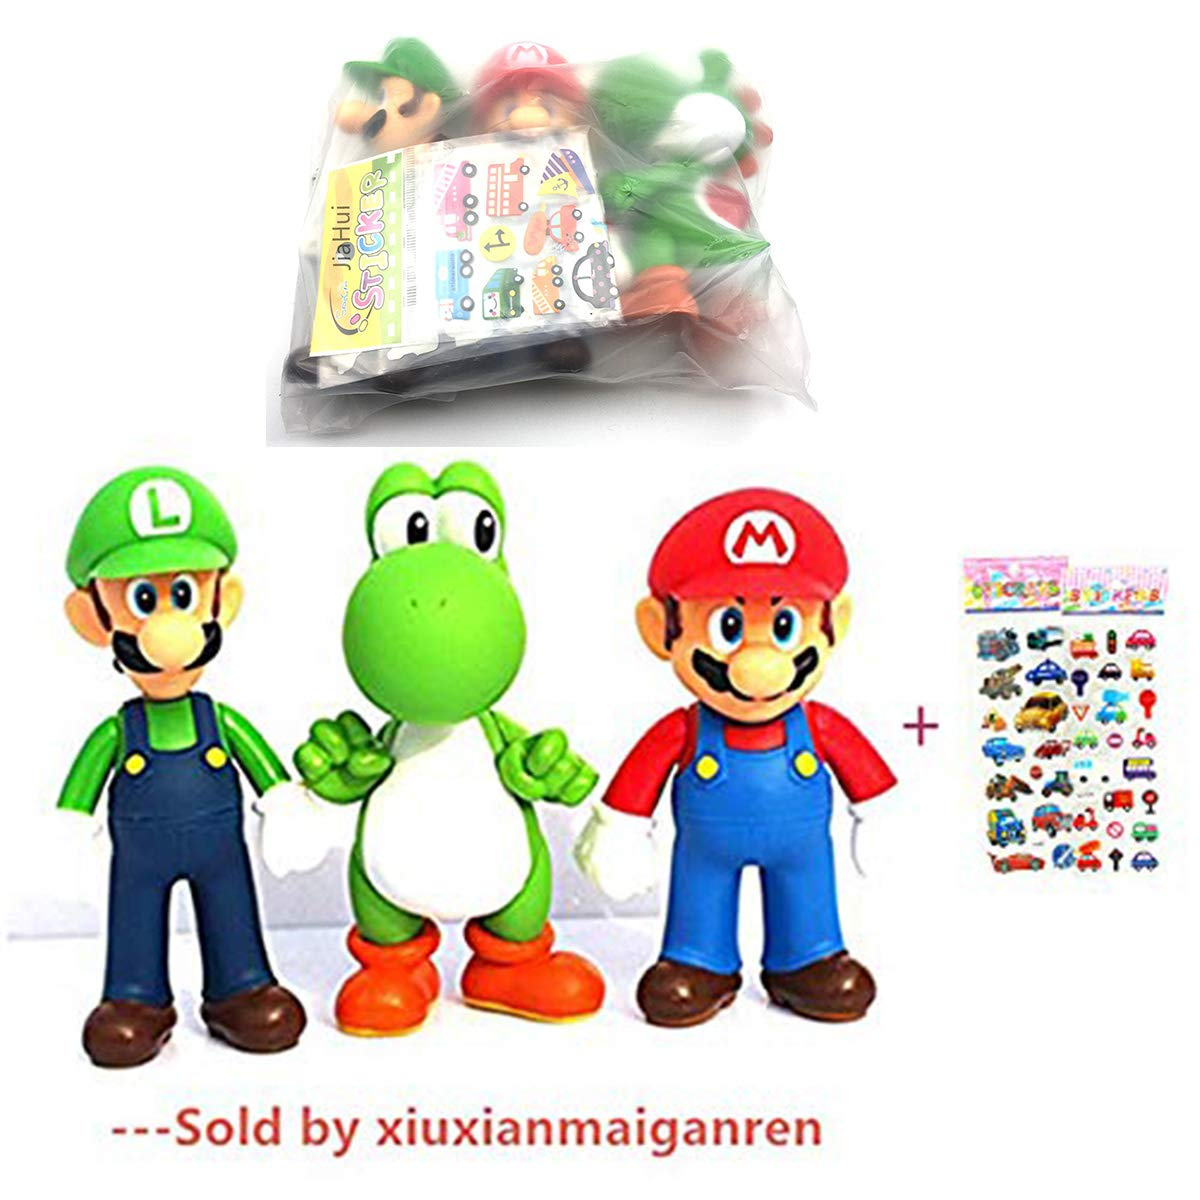 Jiahui Brand 3 Pcs Super Mario Bros Luigi Mario Yoshi PVC Action Figures Toy 4.7